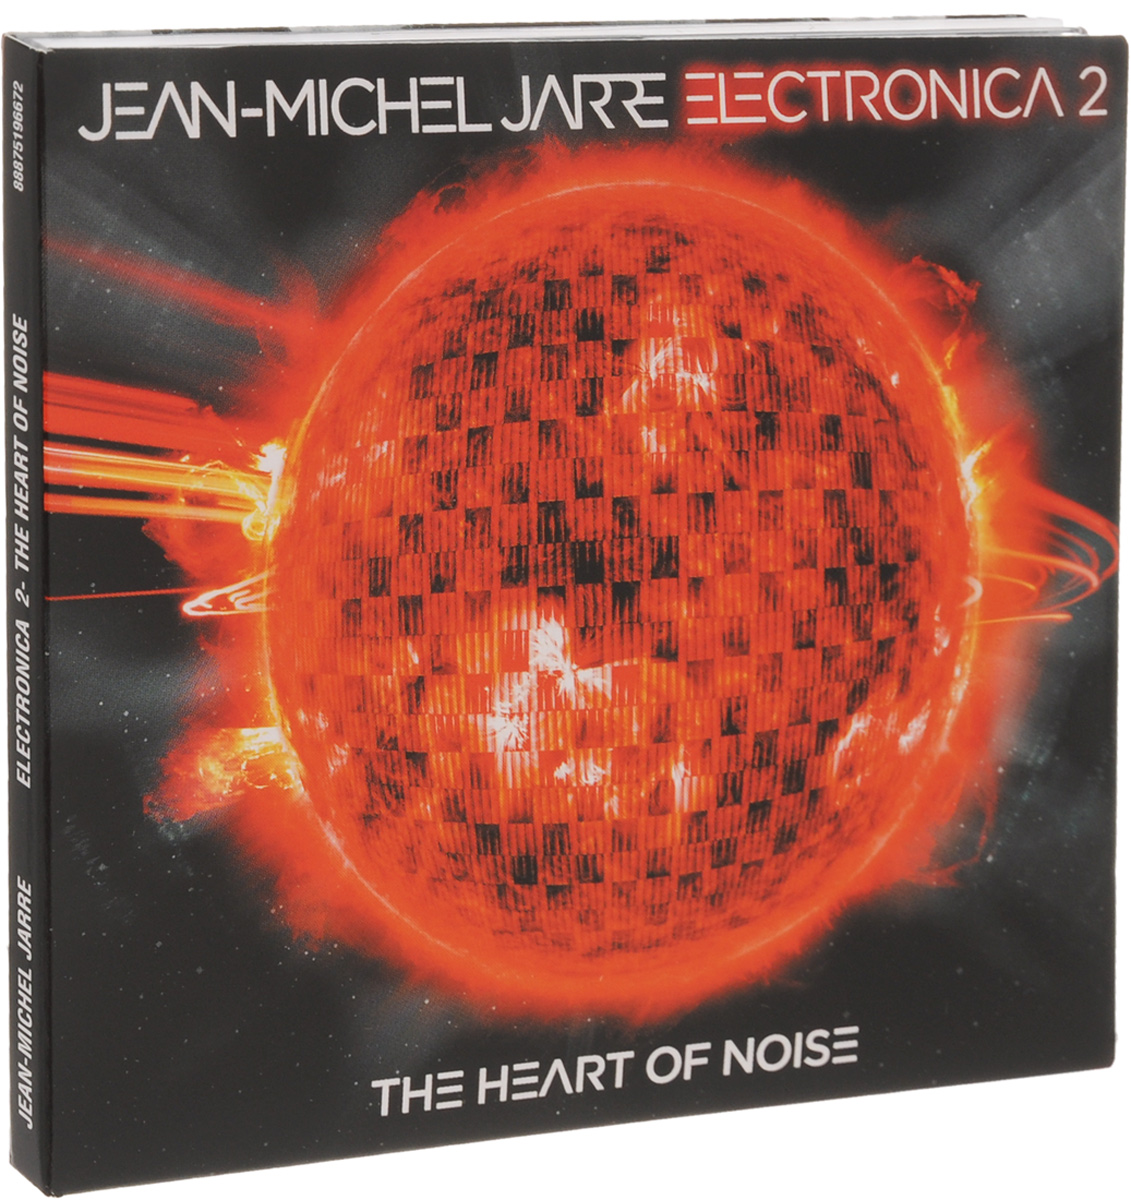 Жан-Мишель Жарр Jean-Michel Jarre. Electronica 2 - The Heart Of Noise цены